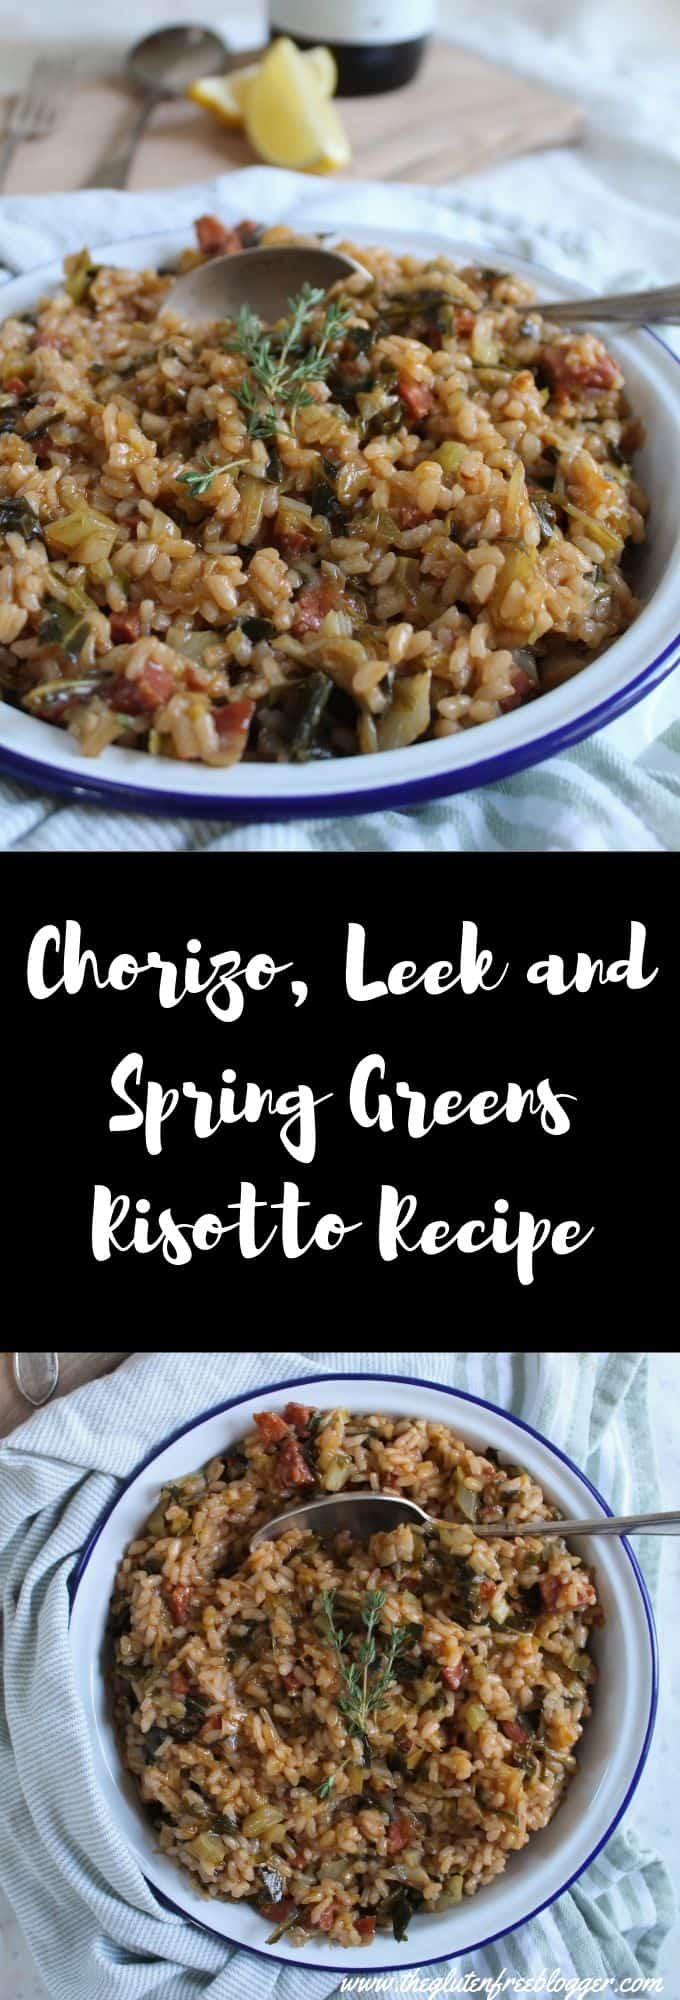 gluten free chorizo leek and spring greens risotto recipe easy one pot meal dinner ideas coeliac